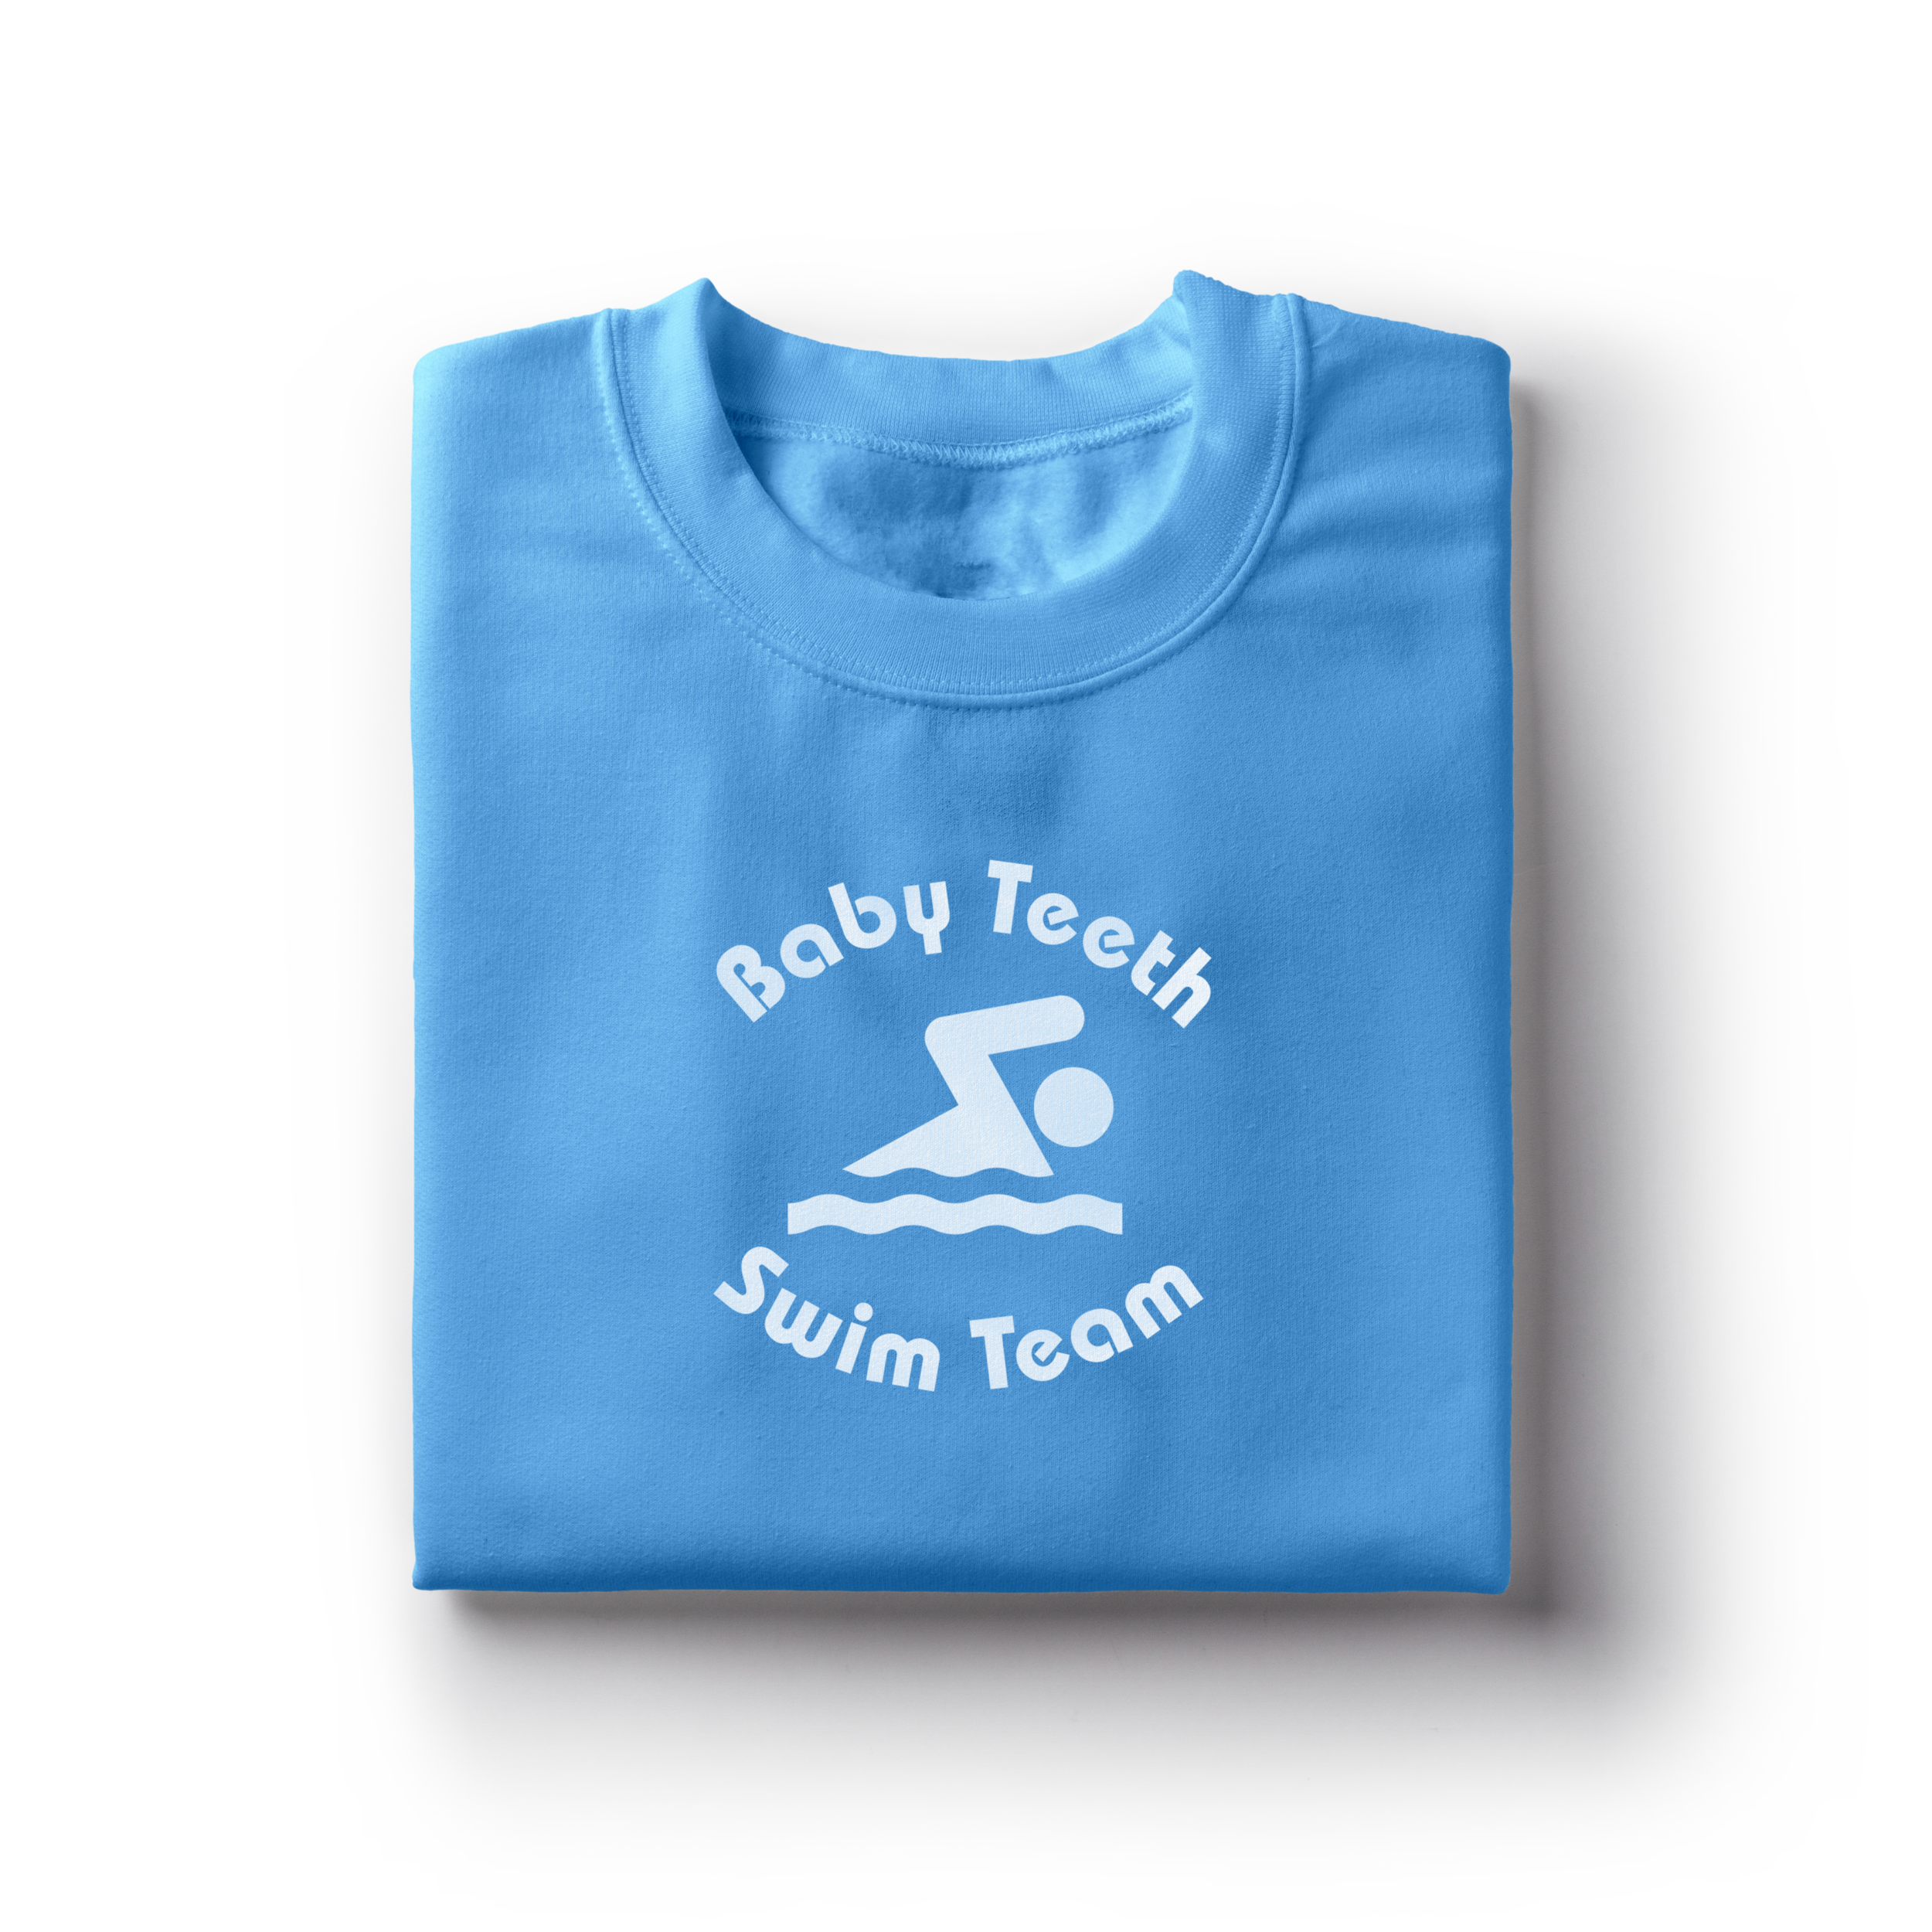 swim team t-shirt.png